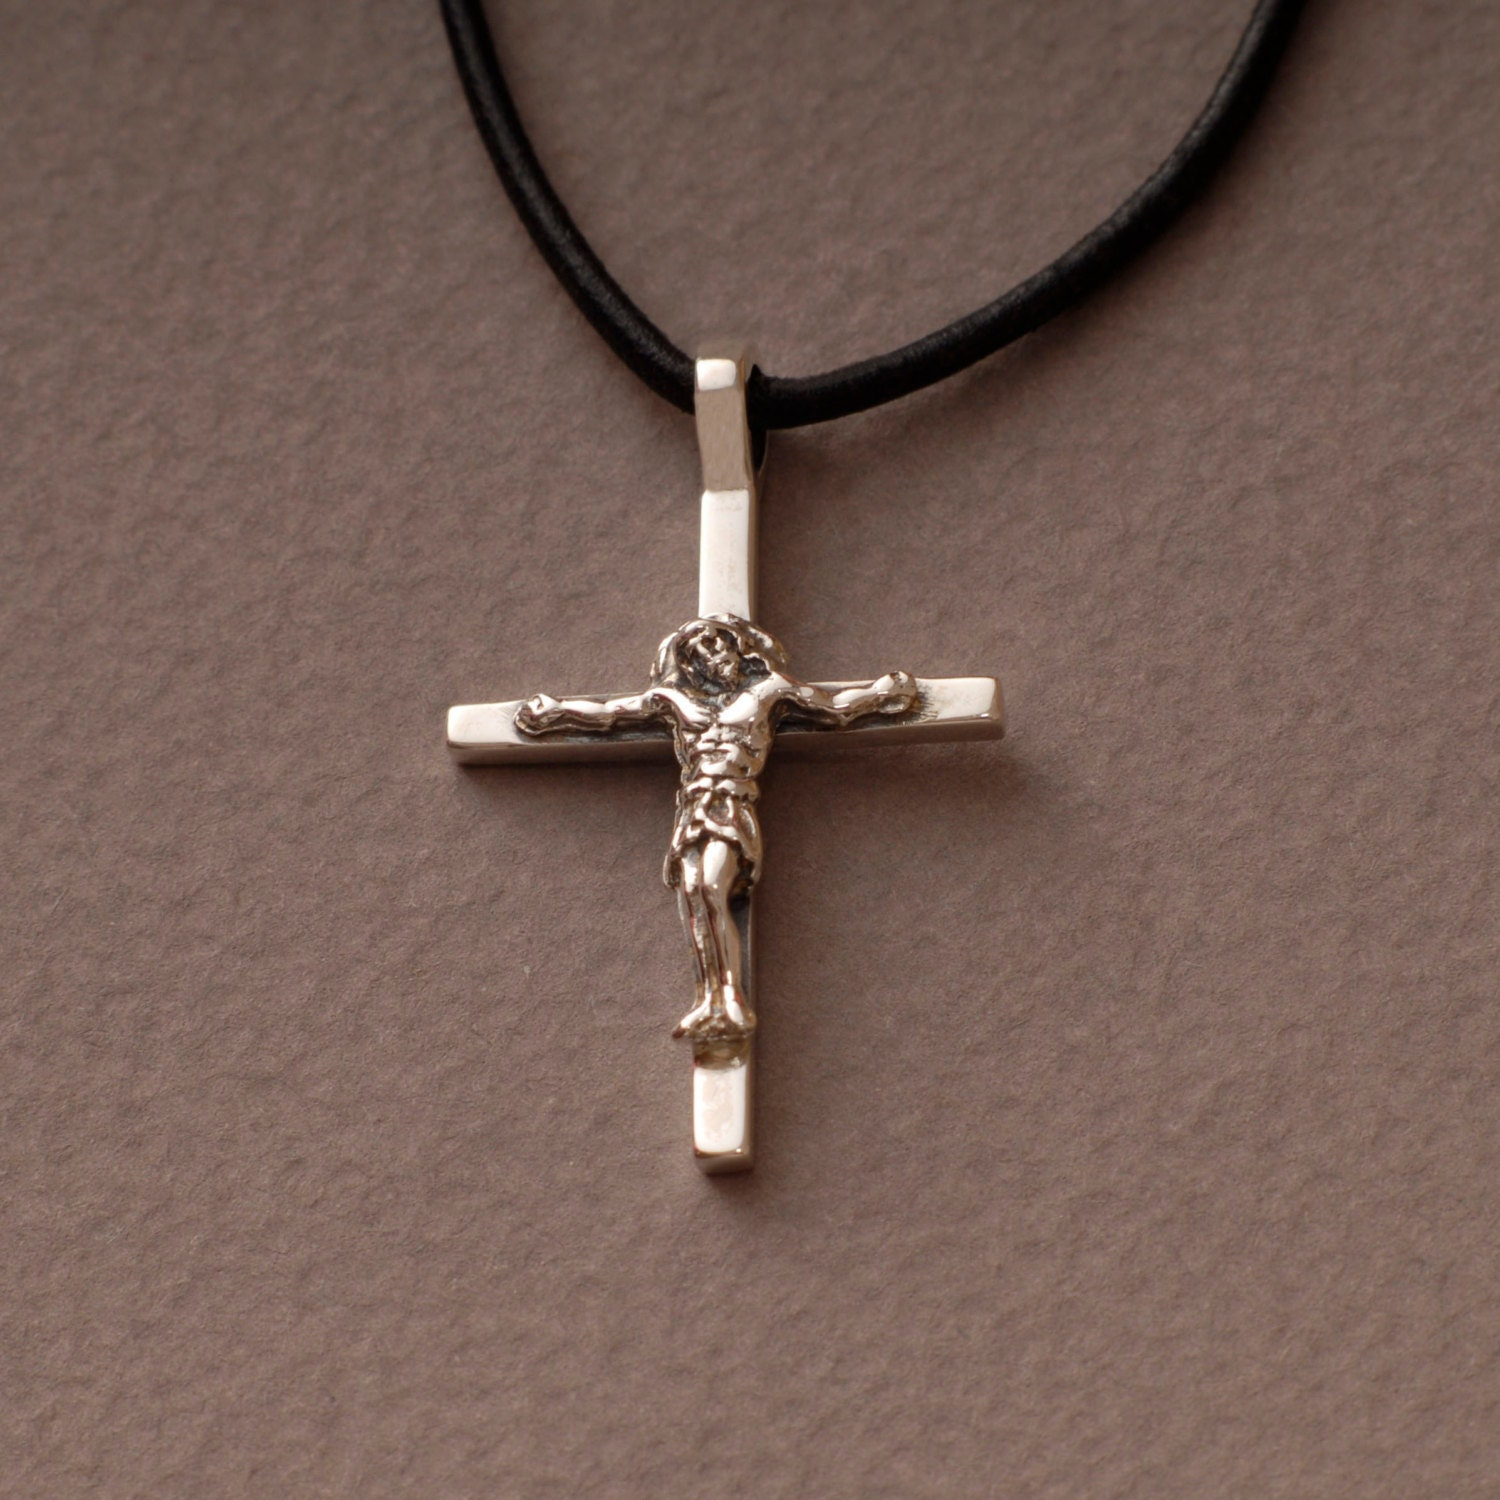 catholic crucifix pendant bright jewelry for necklace religious men women steel stainless cross great background